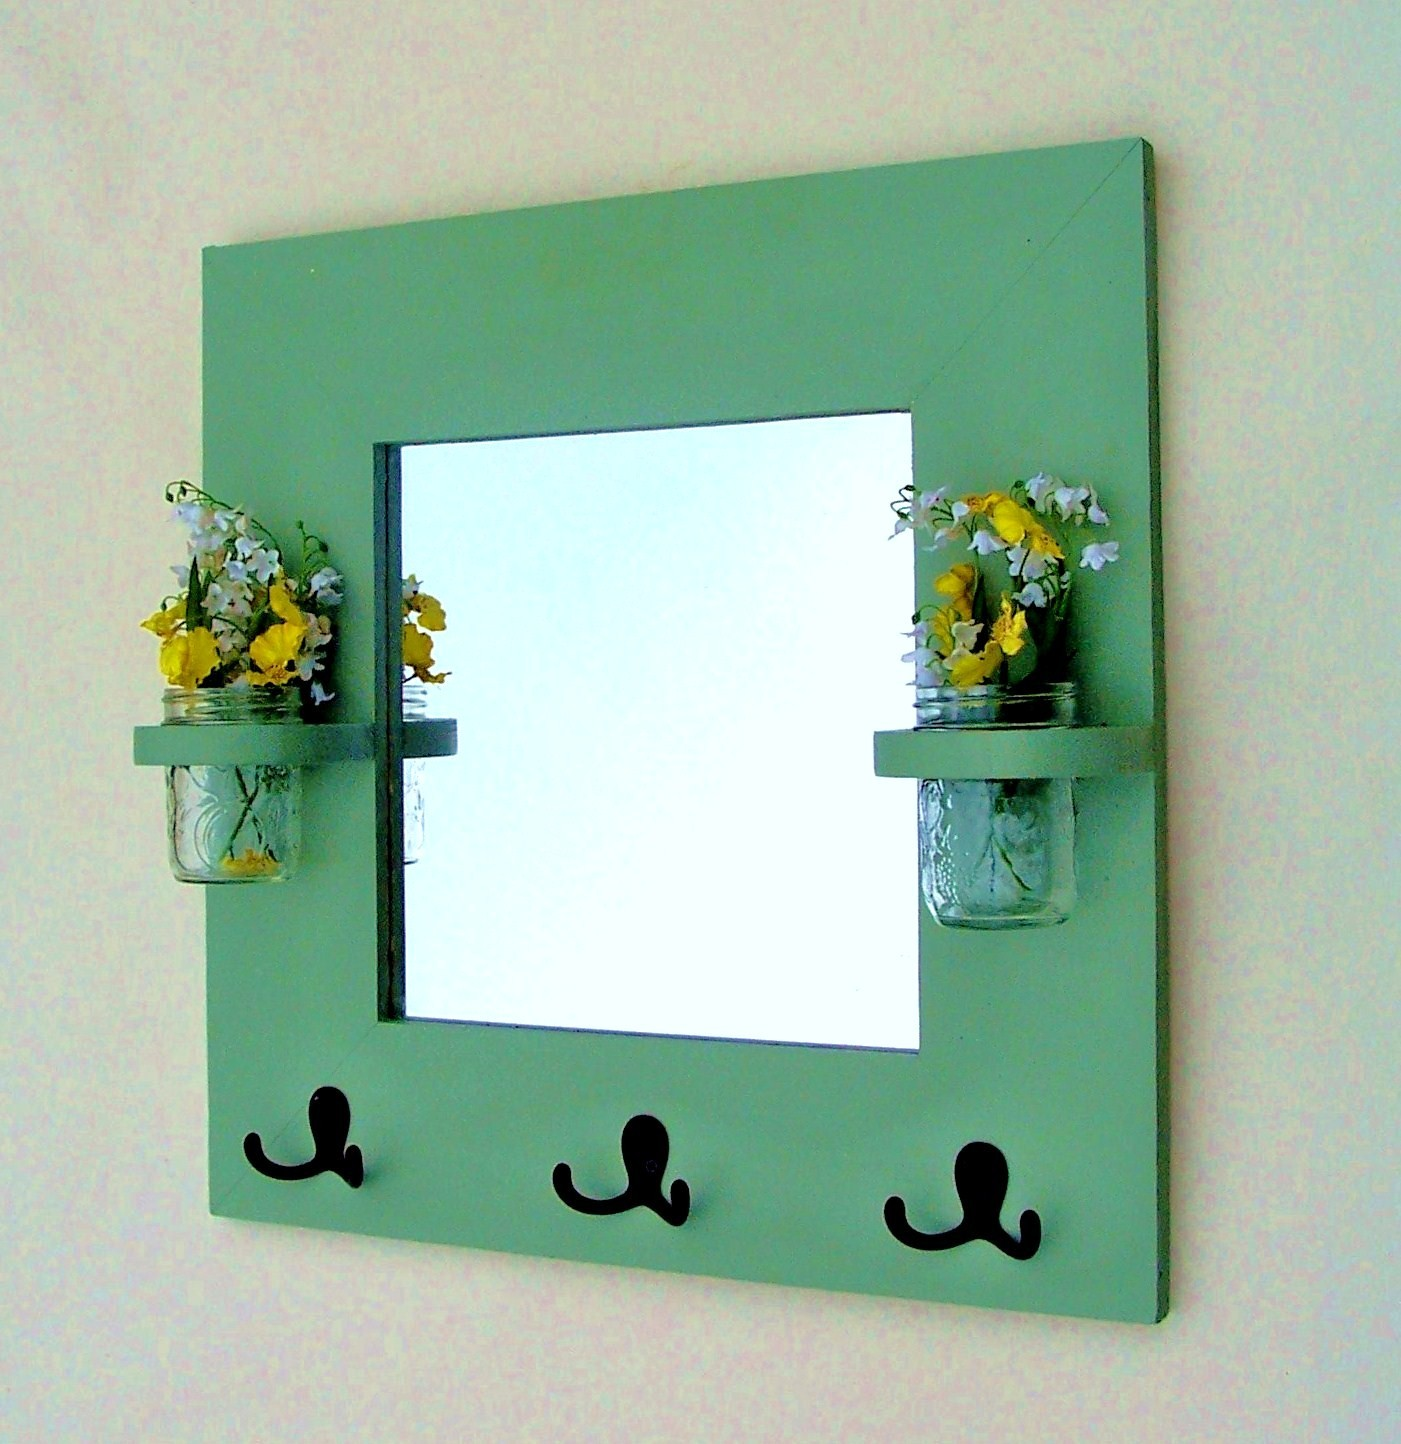 Complete Lovely Decorative Wall Hooks with Small Fake Flowers and Clear Wall Mirror